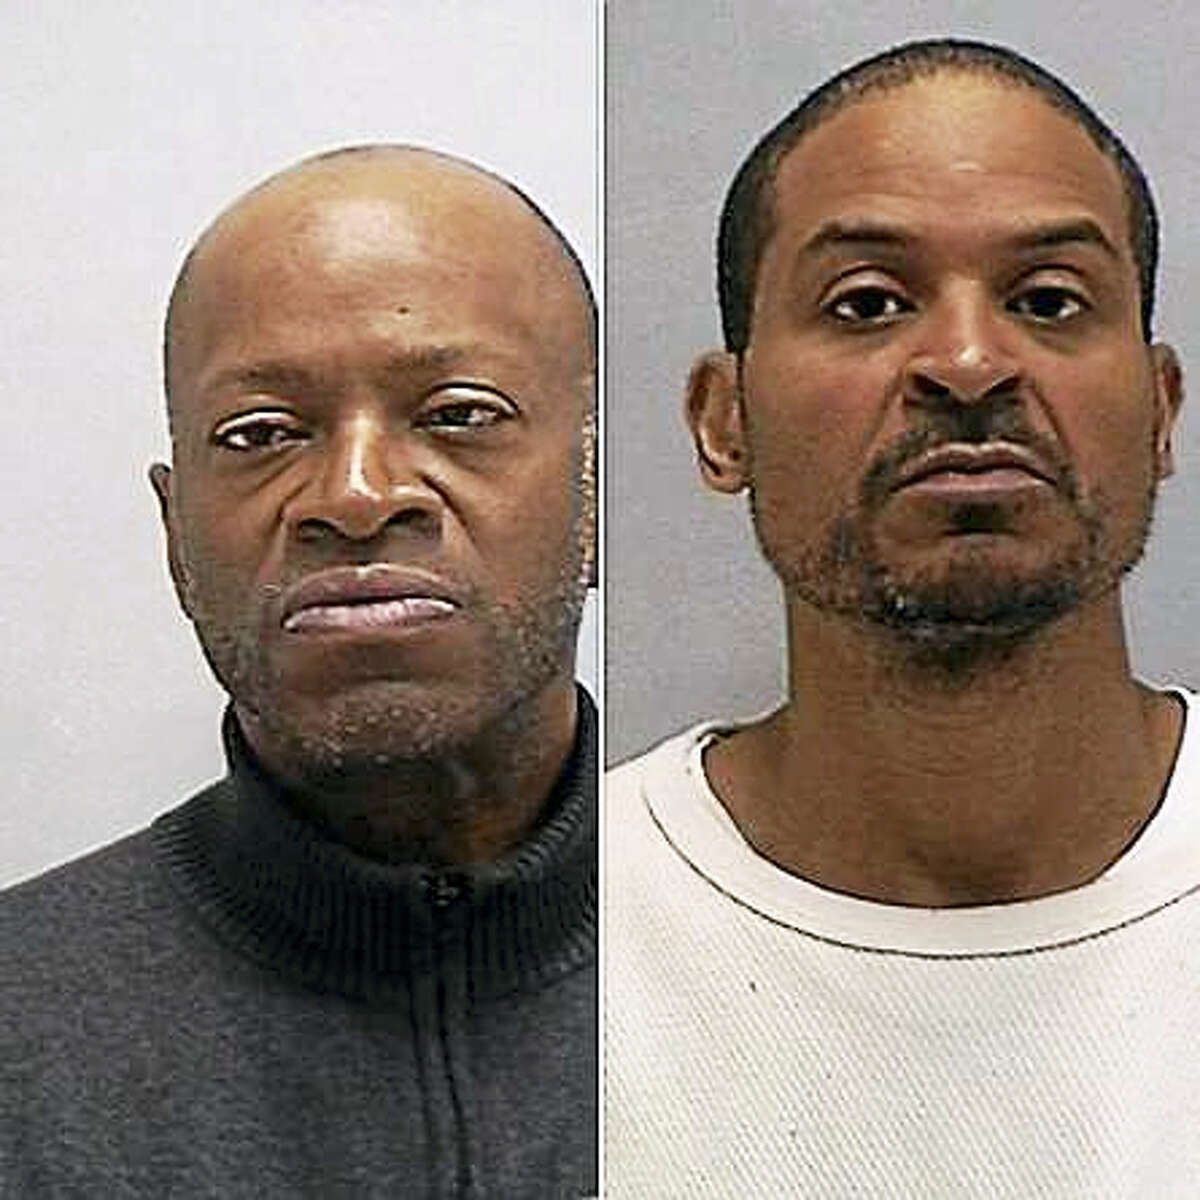 Orange police arrested Franklin Wells (left) and Pedro Veira (right) in connection with a November 22, 2016 theft at Burlington Coat Factory on the Boston Post Road.